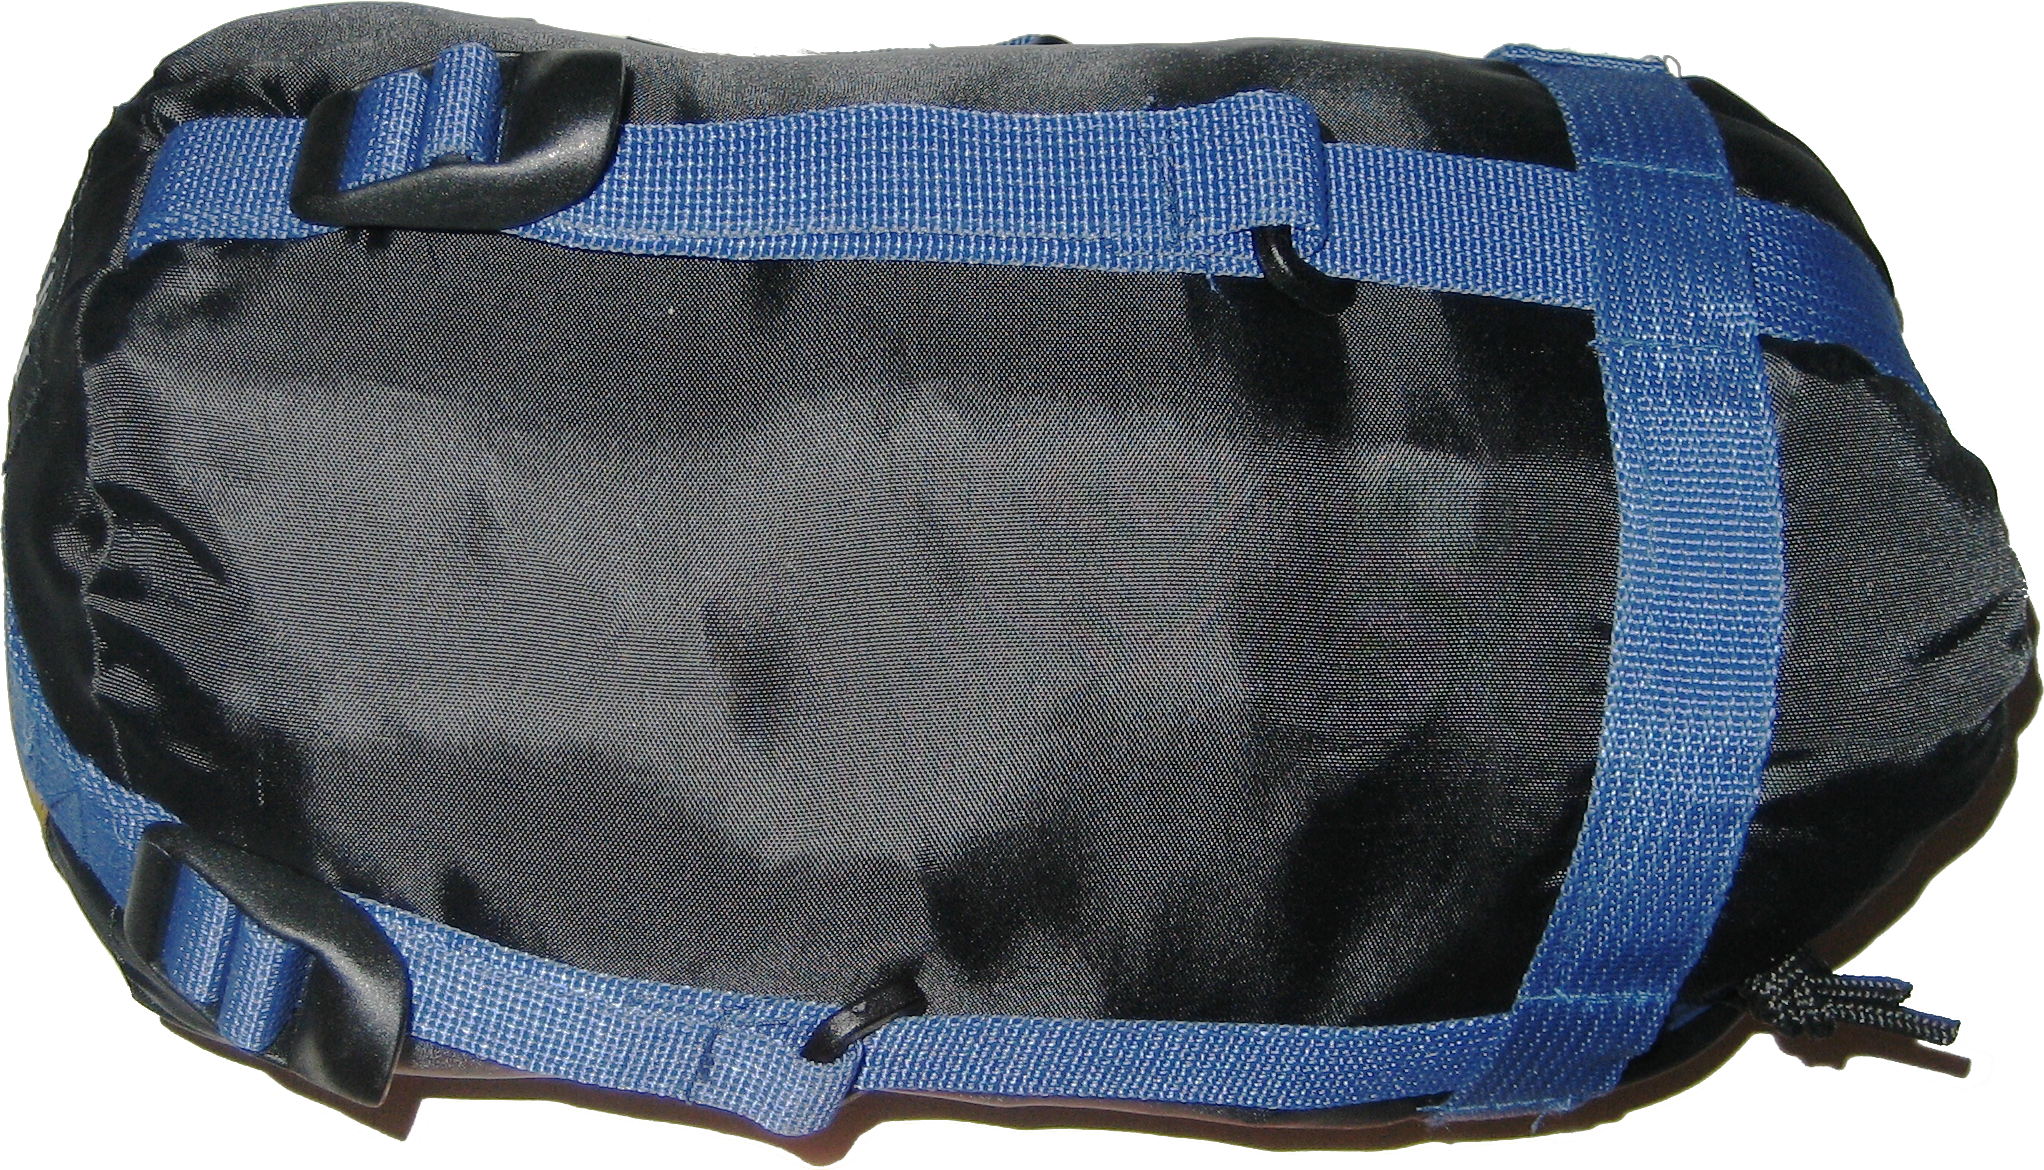 Sleeping bag png. File compactsleepingbag without background